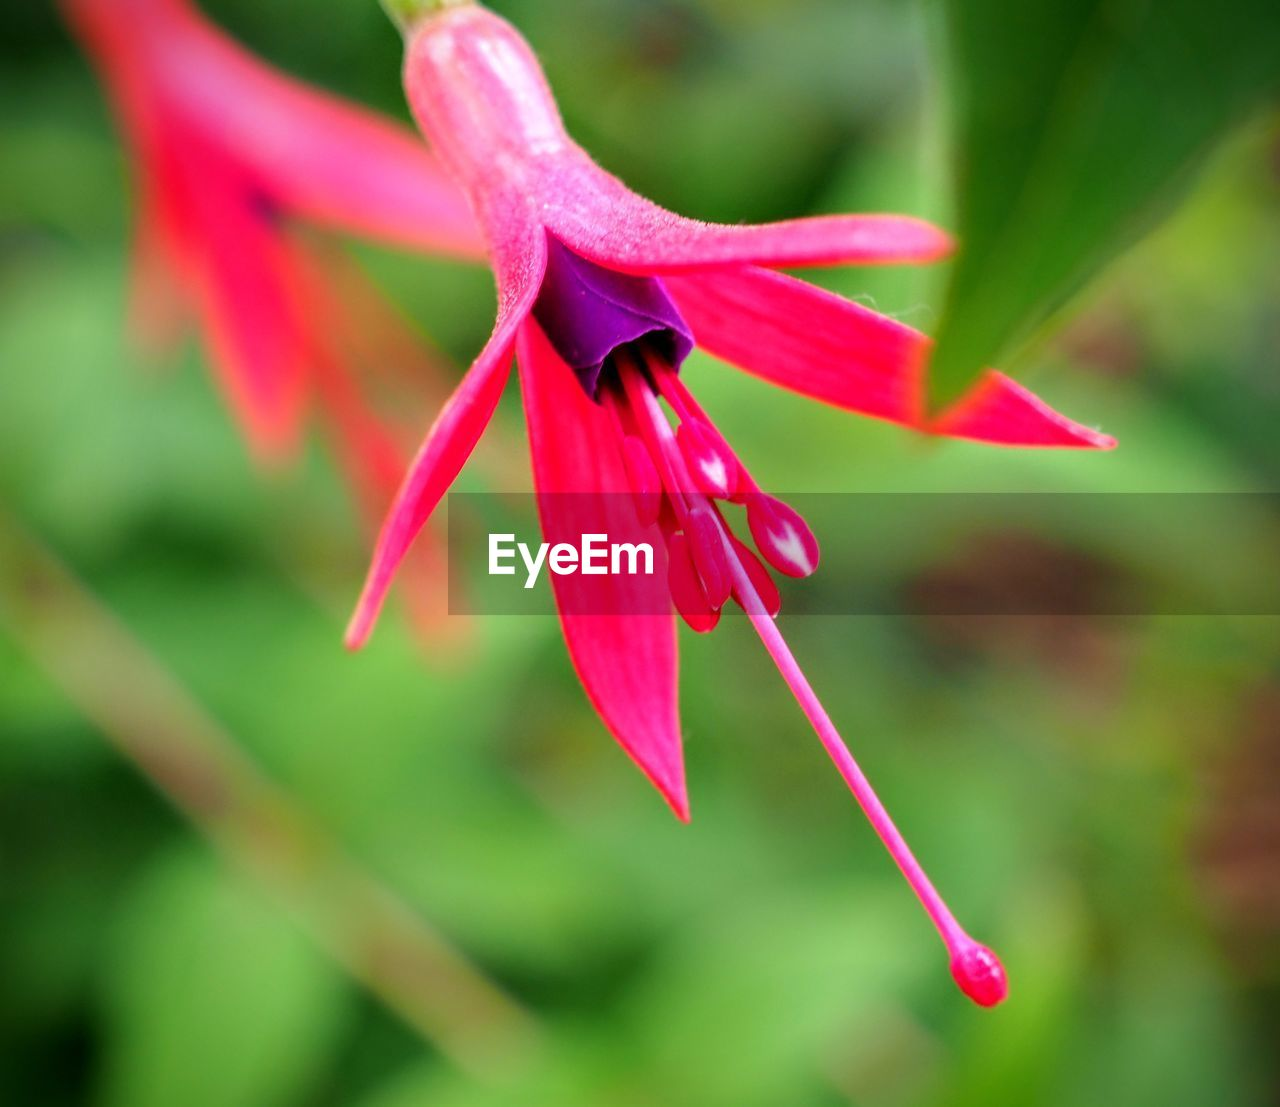 flowering plant, flower, plant, freshness, fragility, petal, vulnerability, beauty in nature, red, close-up, growth, flower head, inflorescence, focus on foreground, nature, no people, day, pink color, pollen, outdoors, sepal